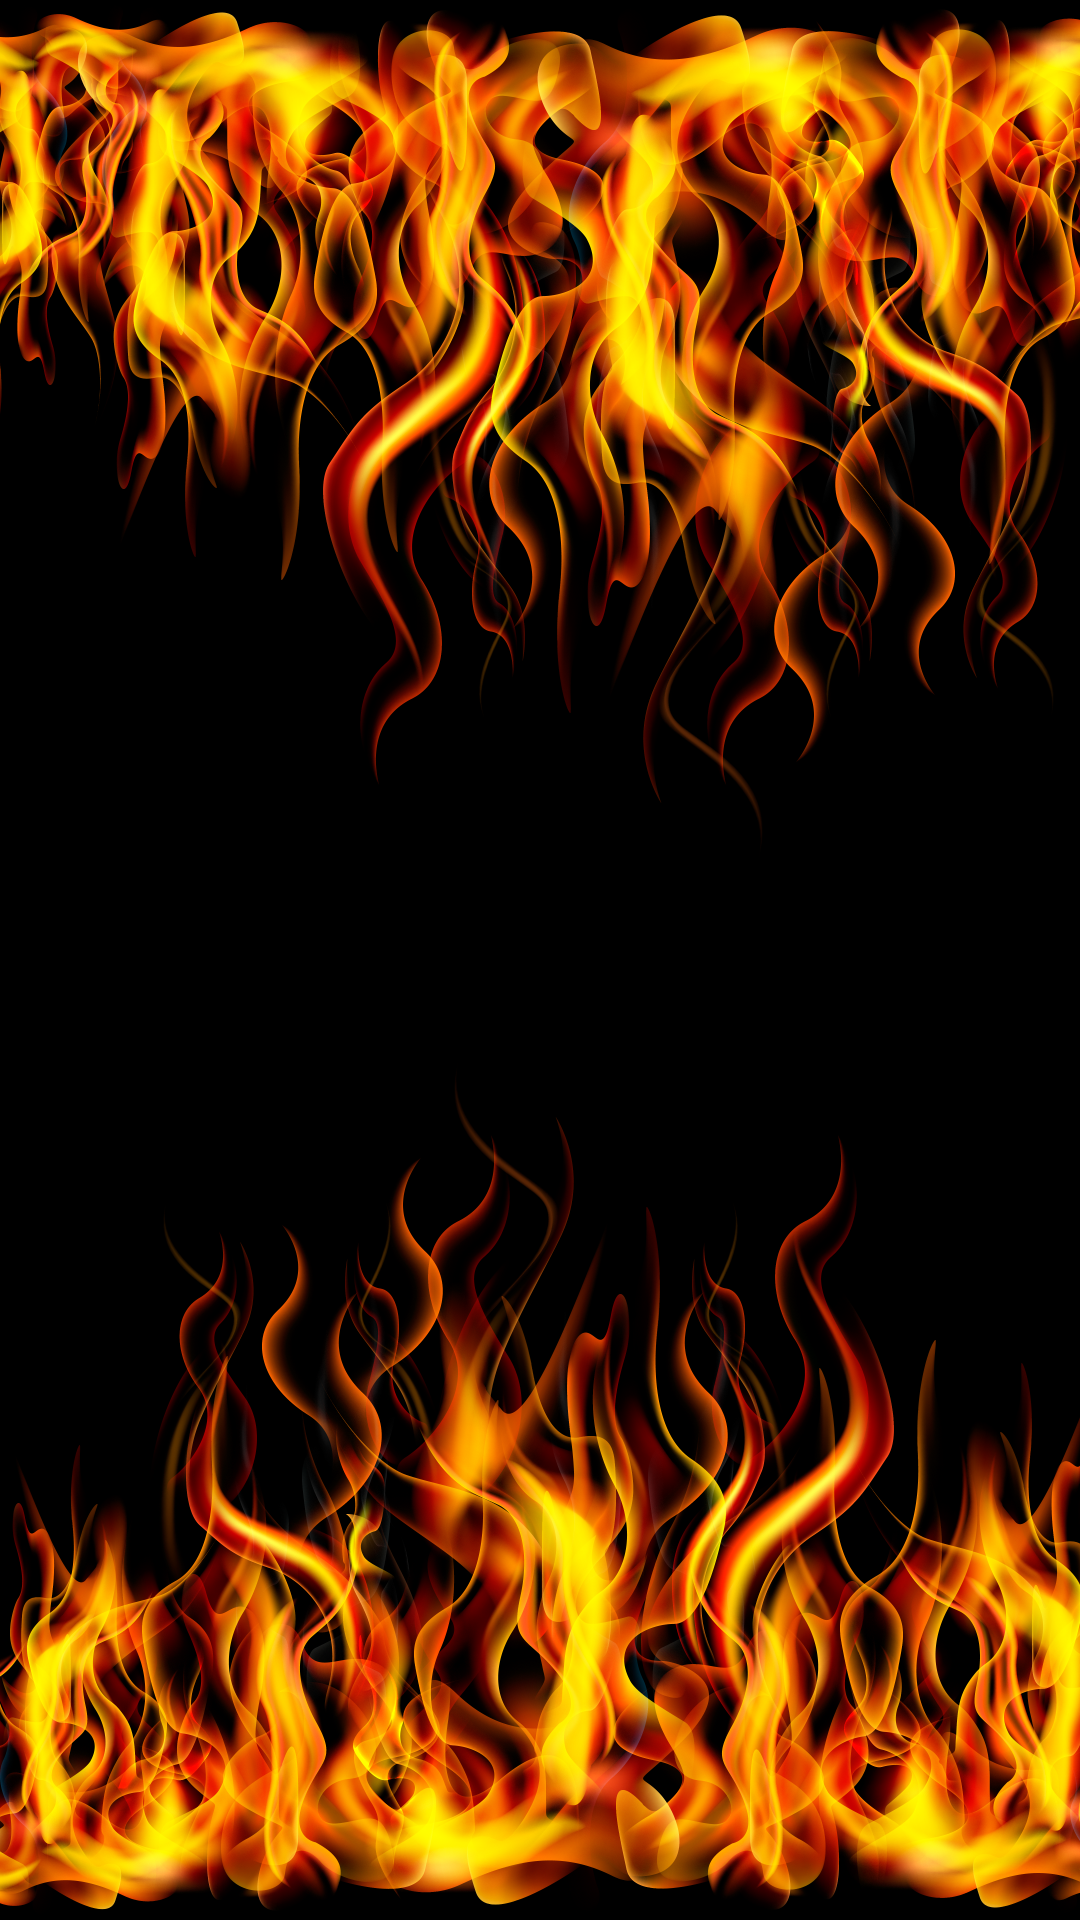 Free HD Fire Destroyer IPhone Wallpaper For Download ...0385